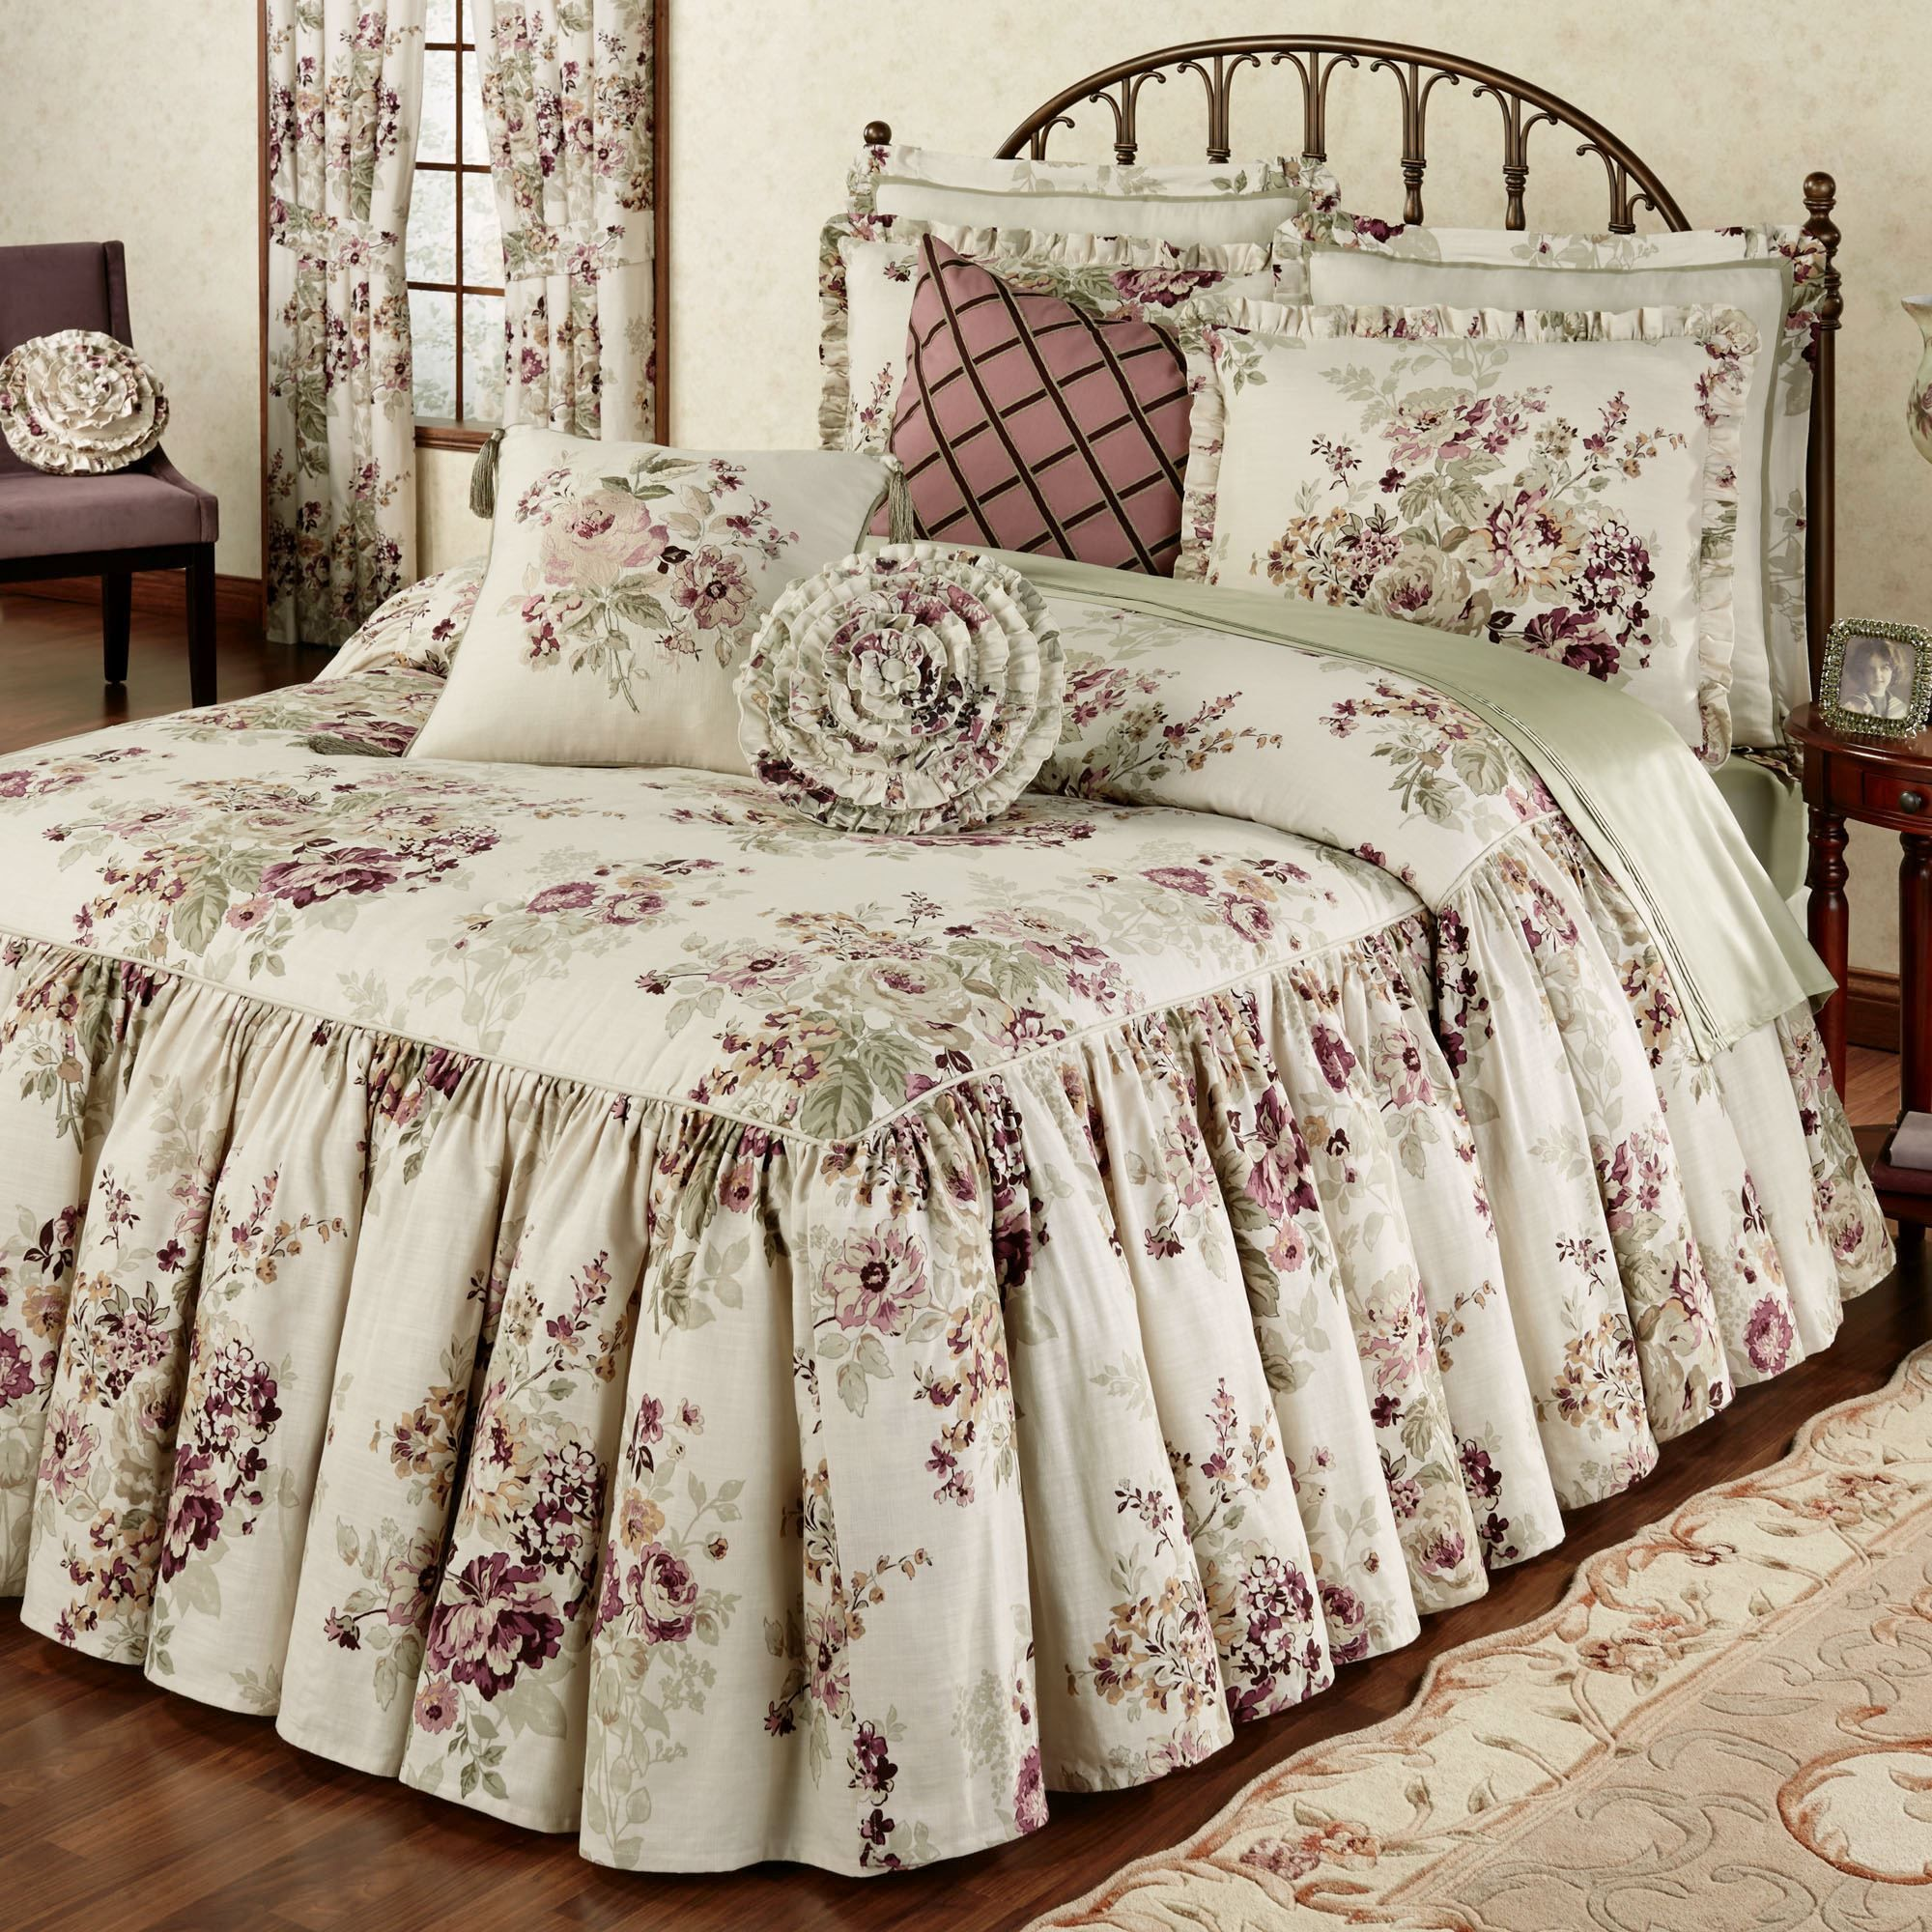 cottage curtain stylish add or a bedding country ideas guest lovely touch curtains beautiful luxury style of bedspreads designs master and to bedroom your